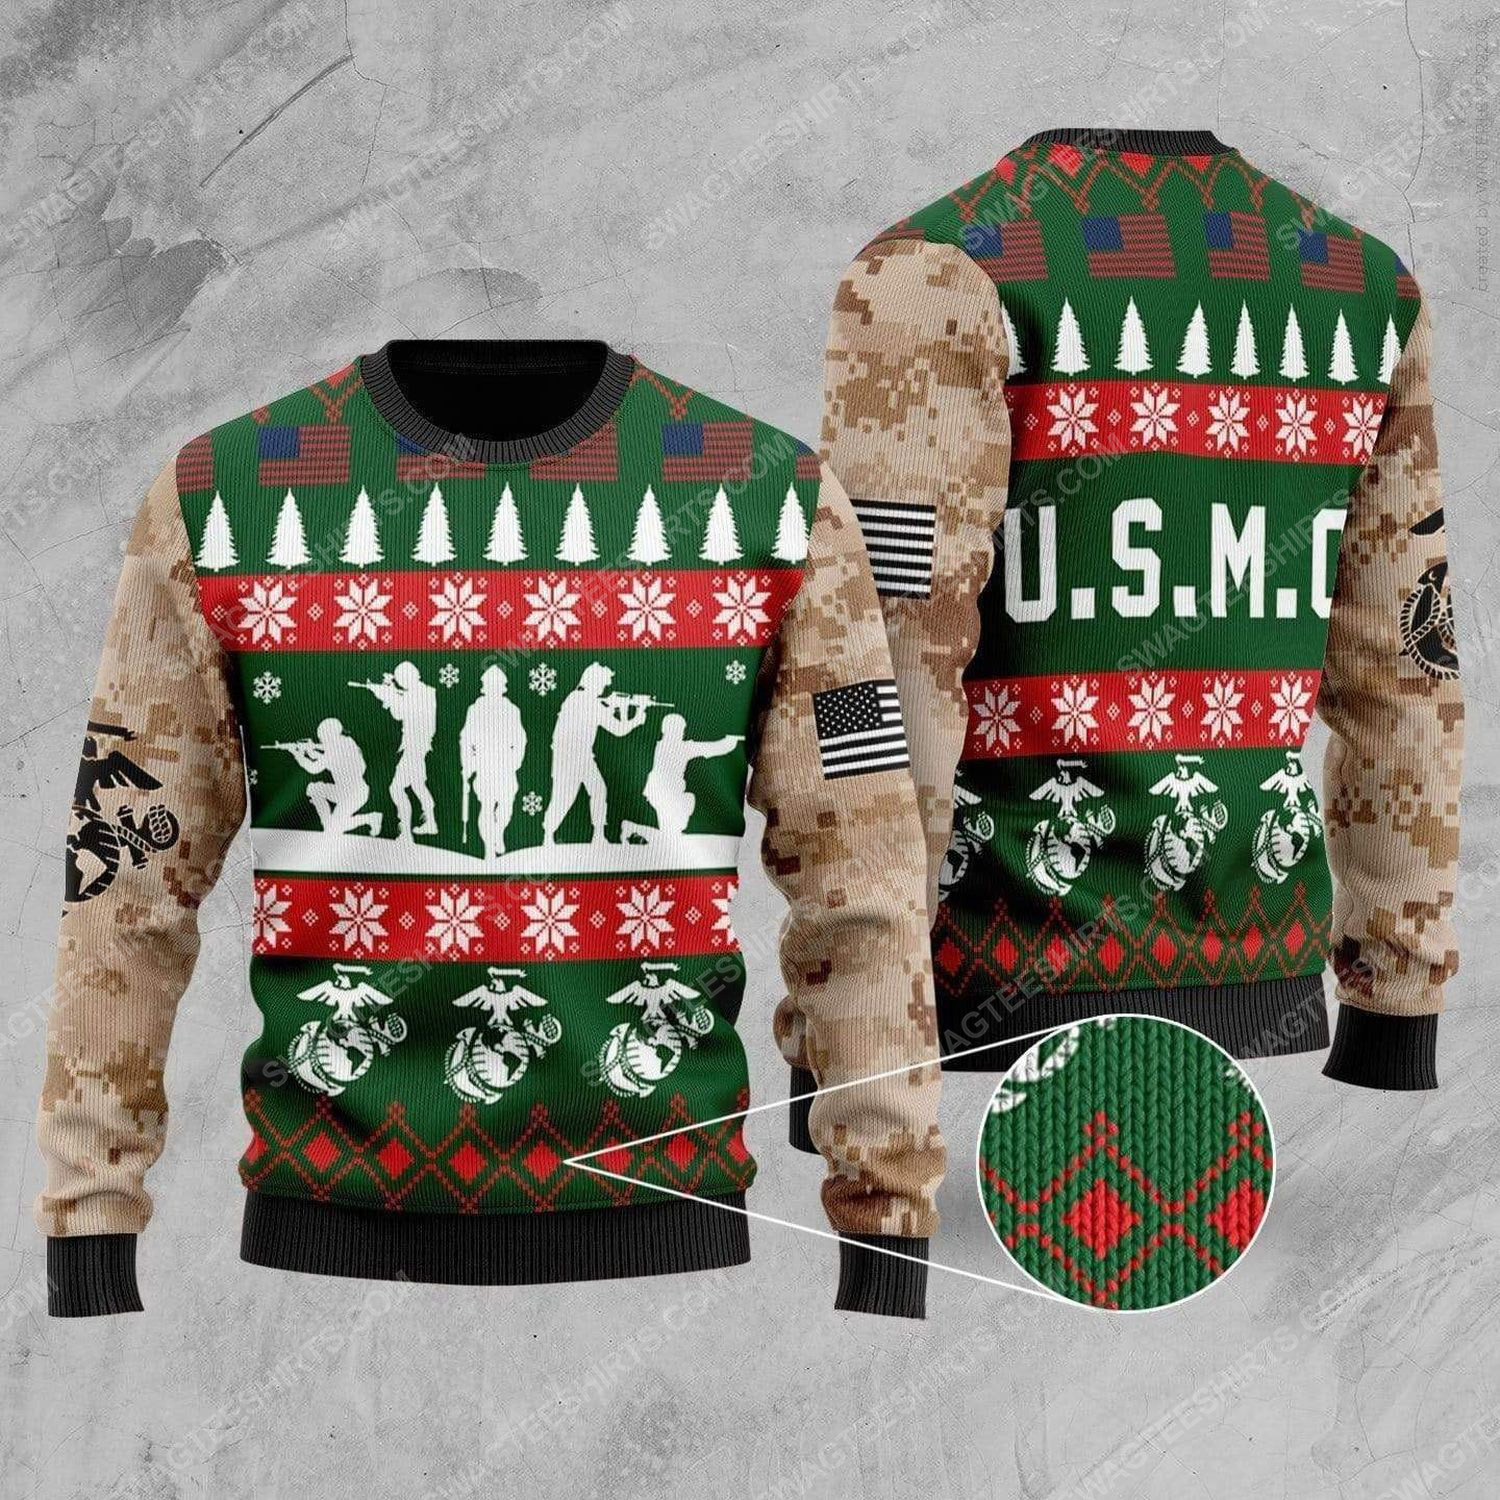 United states marine corps all over print ugly christmas sweater 1